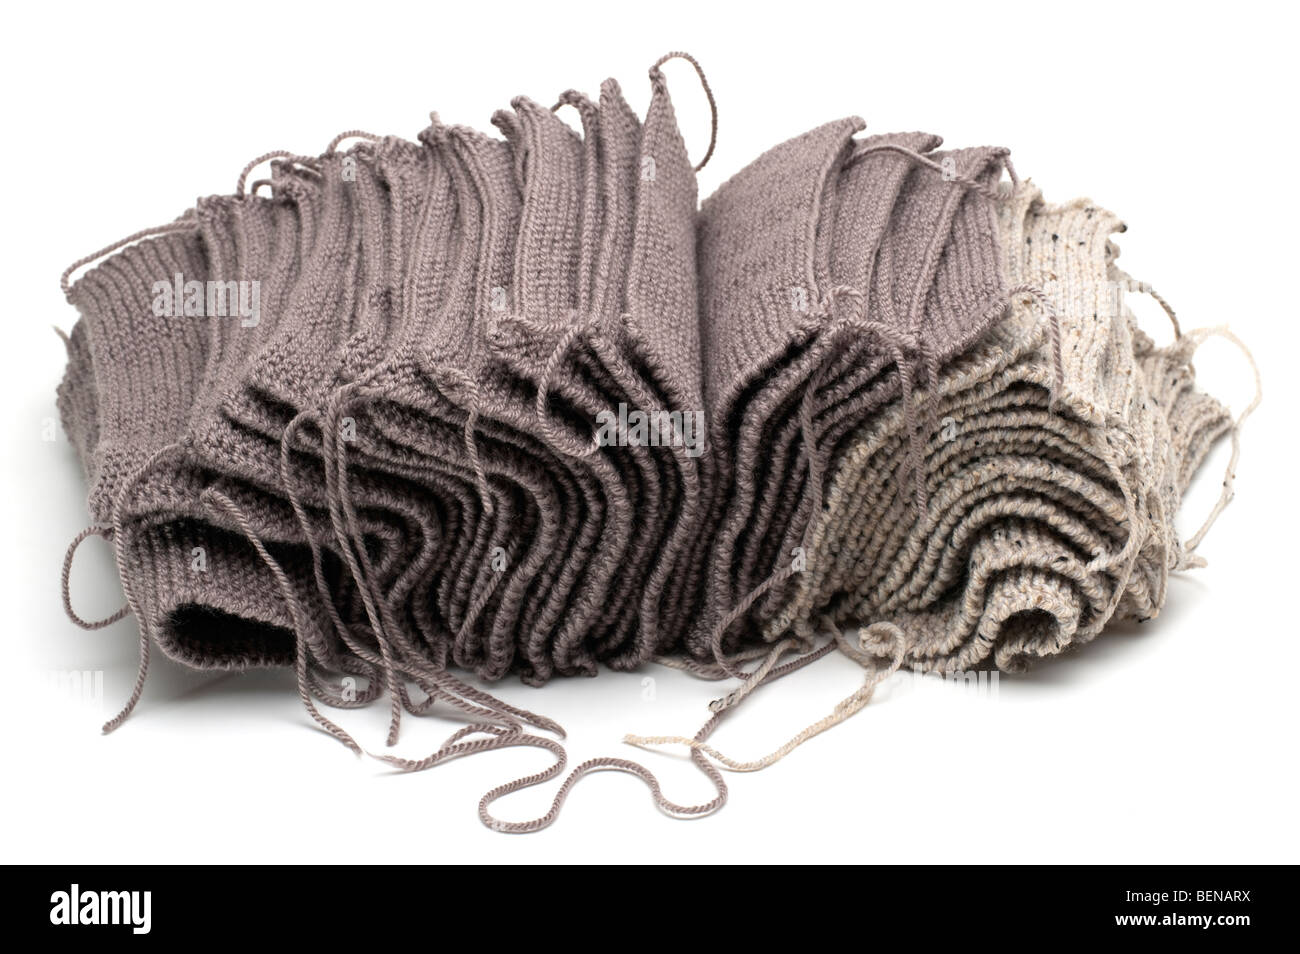 Pile of brown and beige knitted wool squares - Stock Image